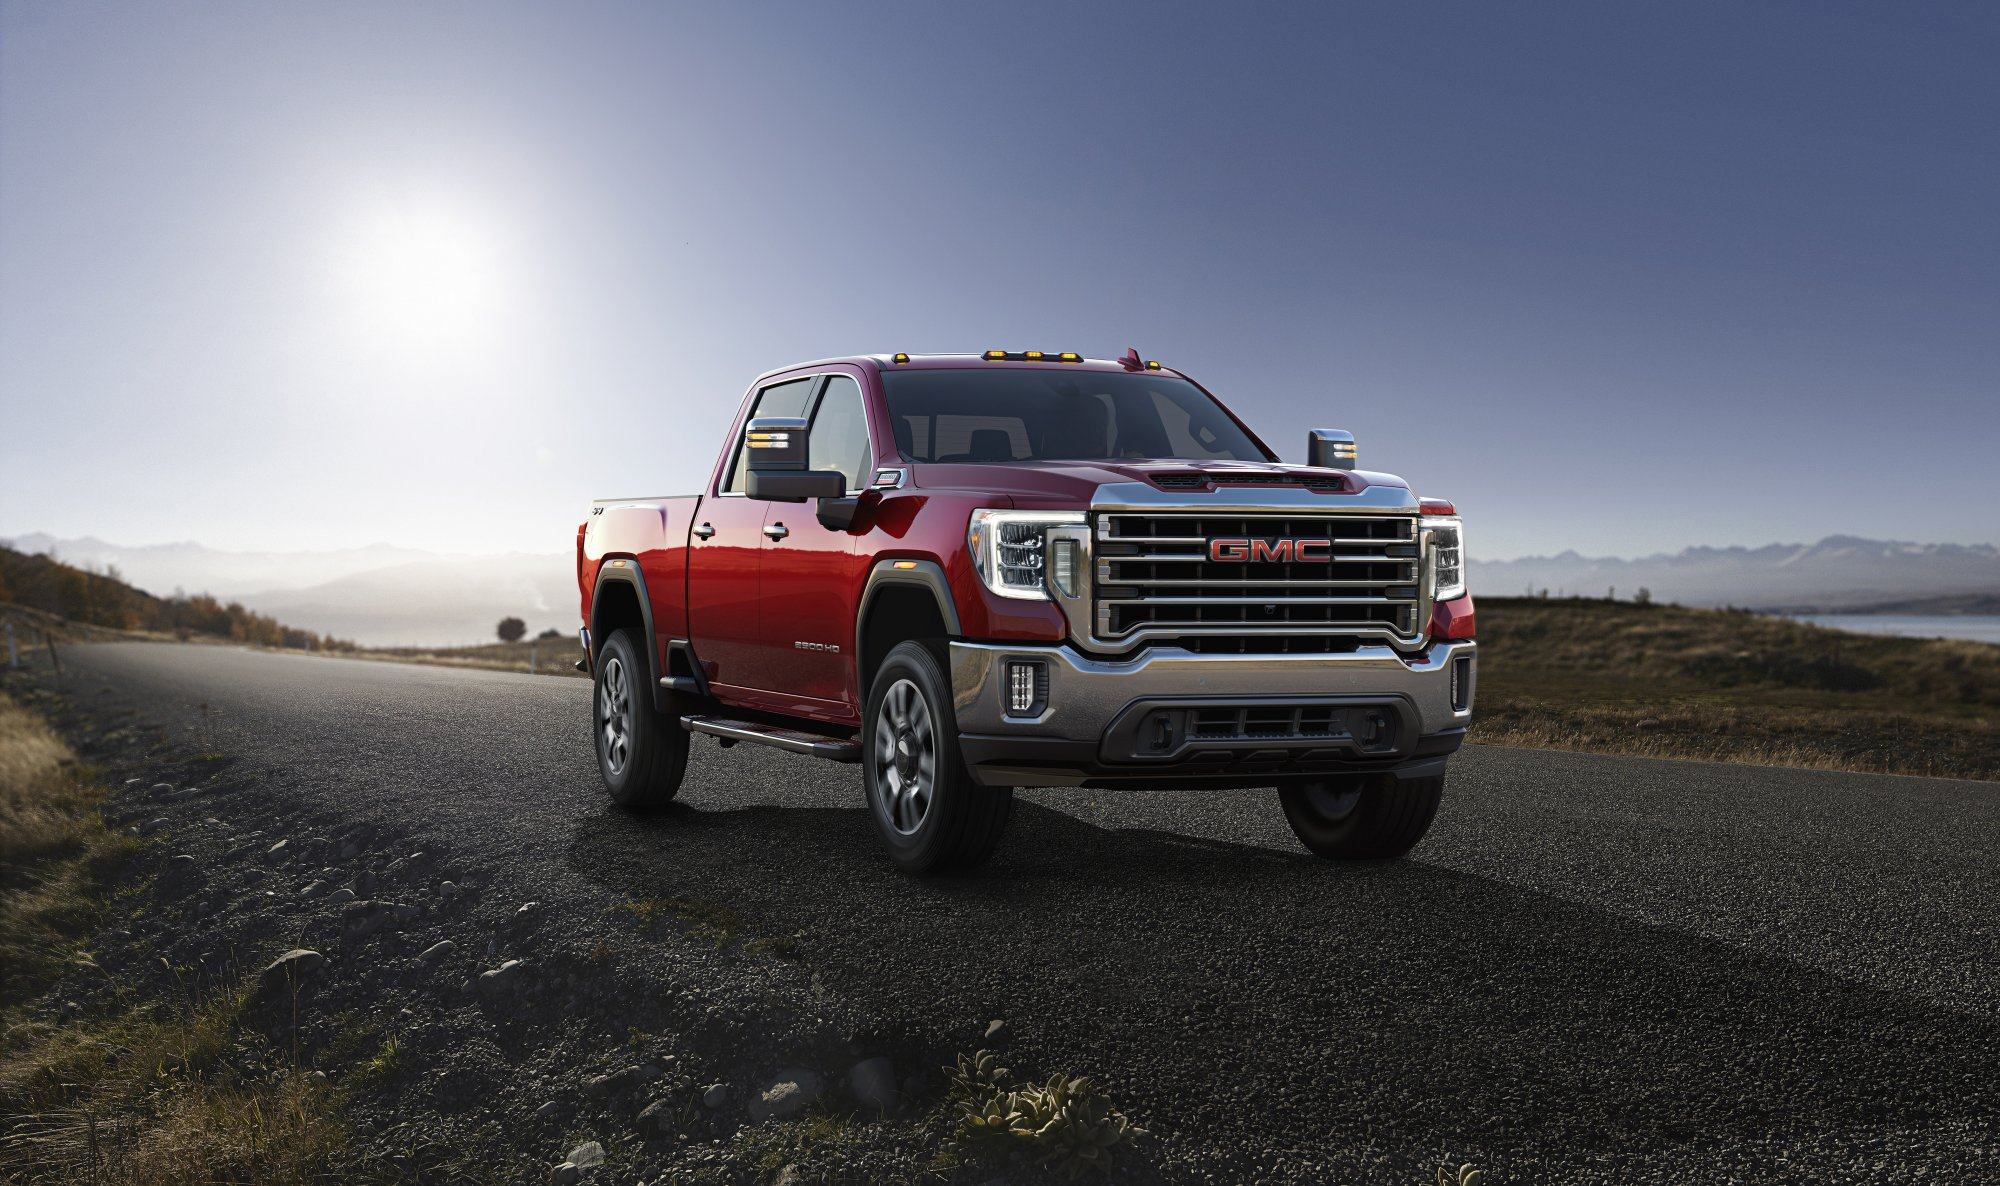 2020 Gmc Sierra 2500 Heavy Duty Images And Details The Newsroom